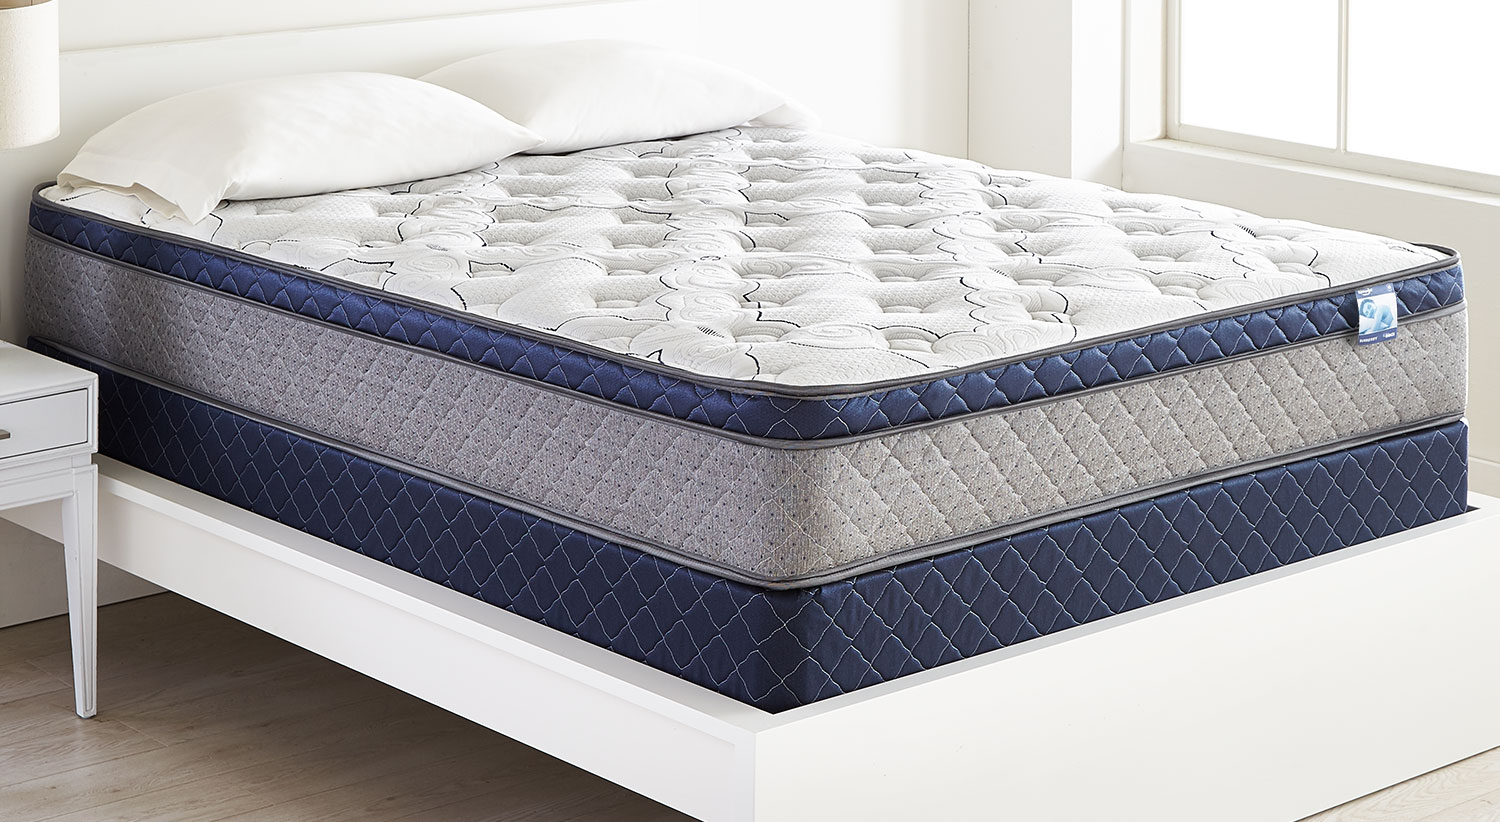 Choose The Right Queen Mattress And Boxspring Set